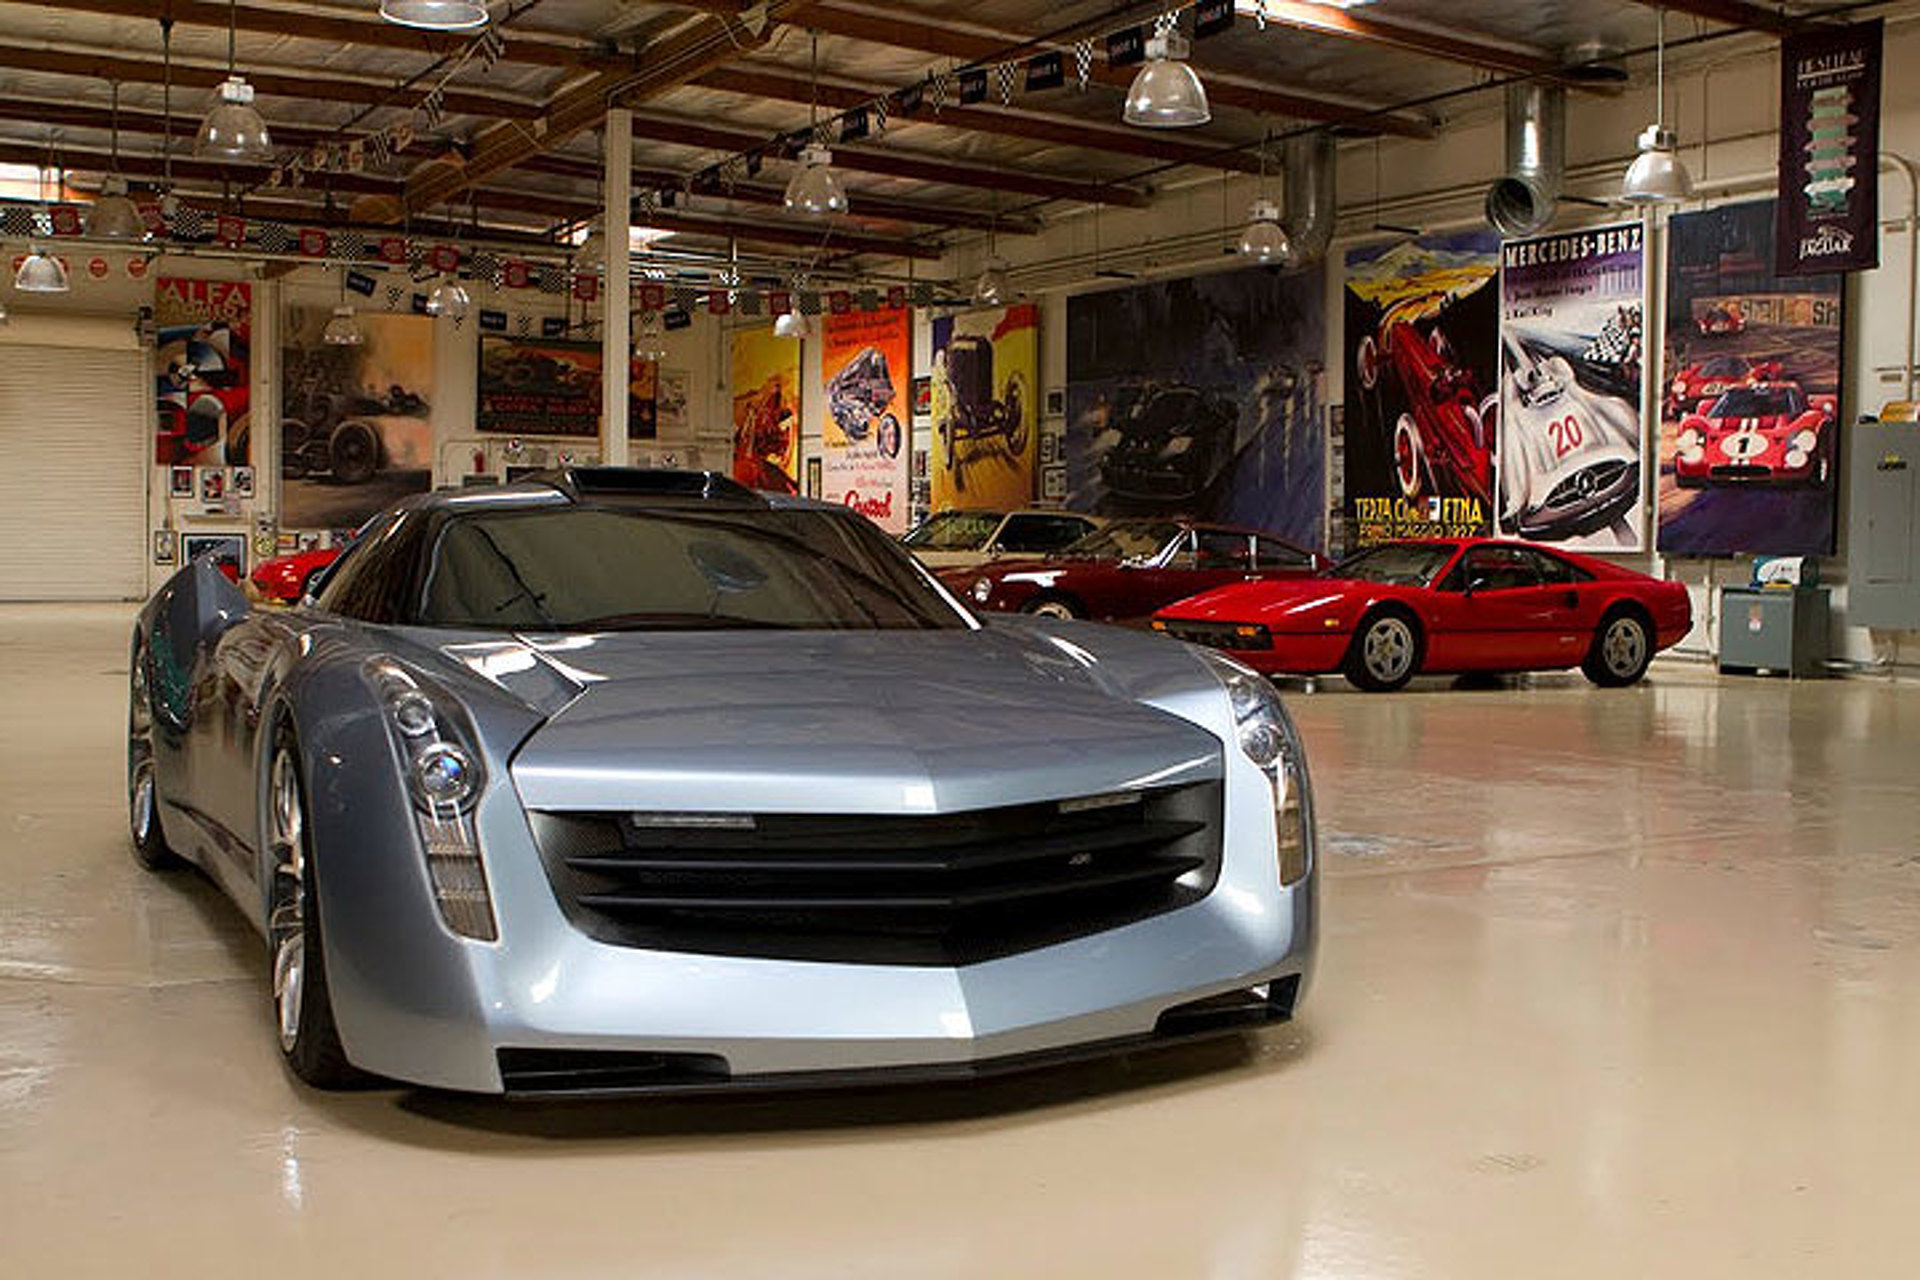 Did You Know? Jay Leno Built a Jet-Powered Supercar